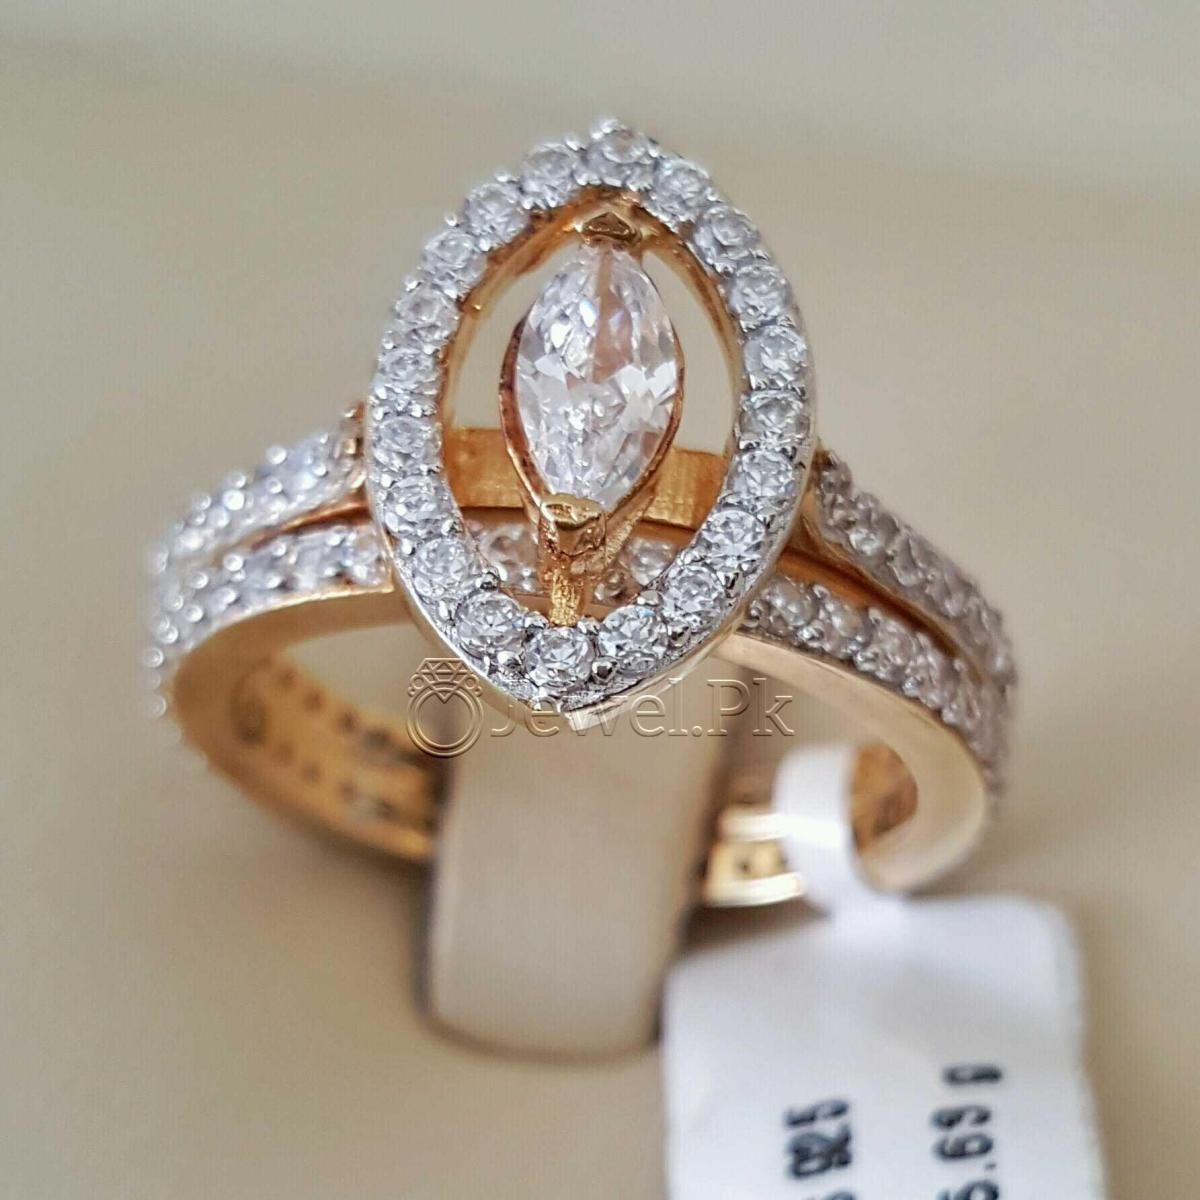 1499 Pure Silver 925 Gold Plated Women Rings 14 natural gemstones pakistan + 925 silver jewelry online